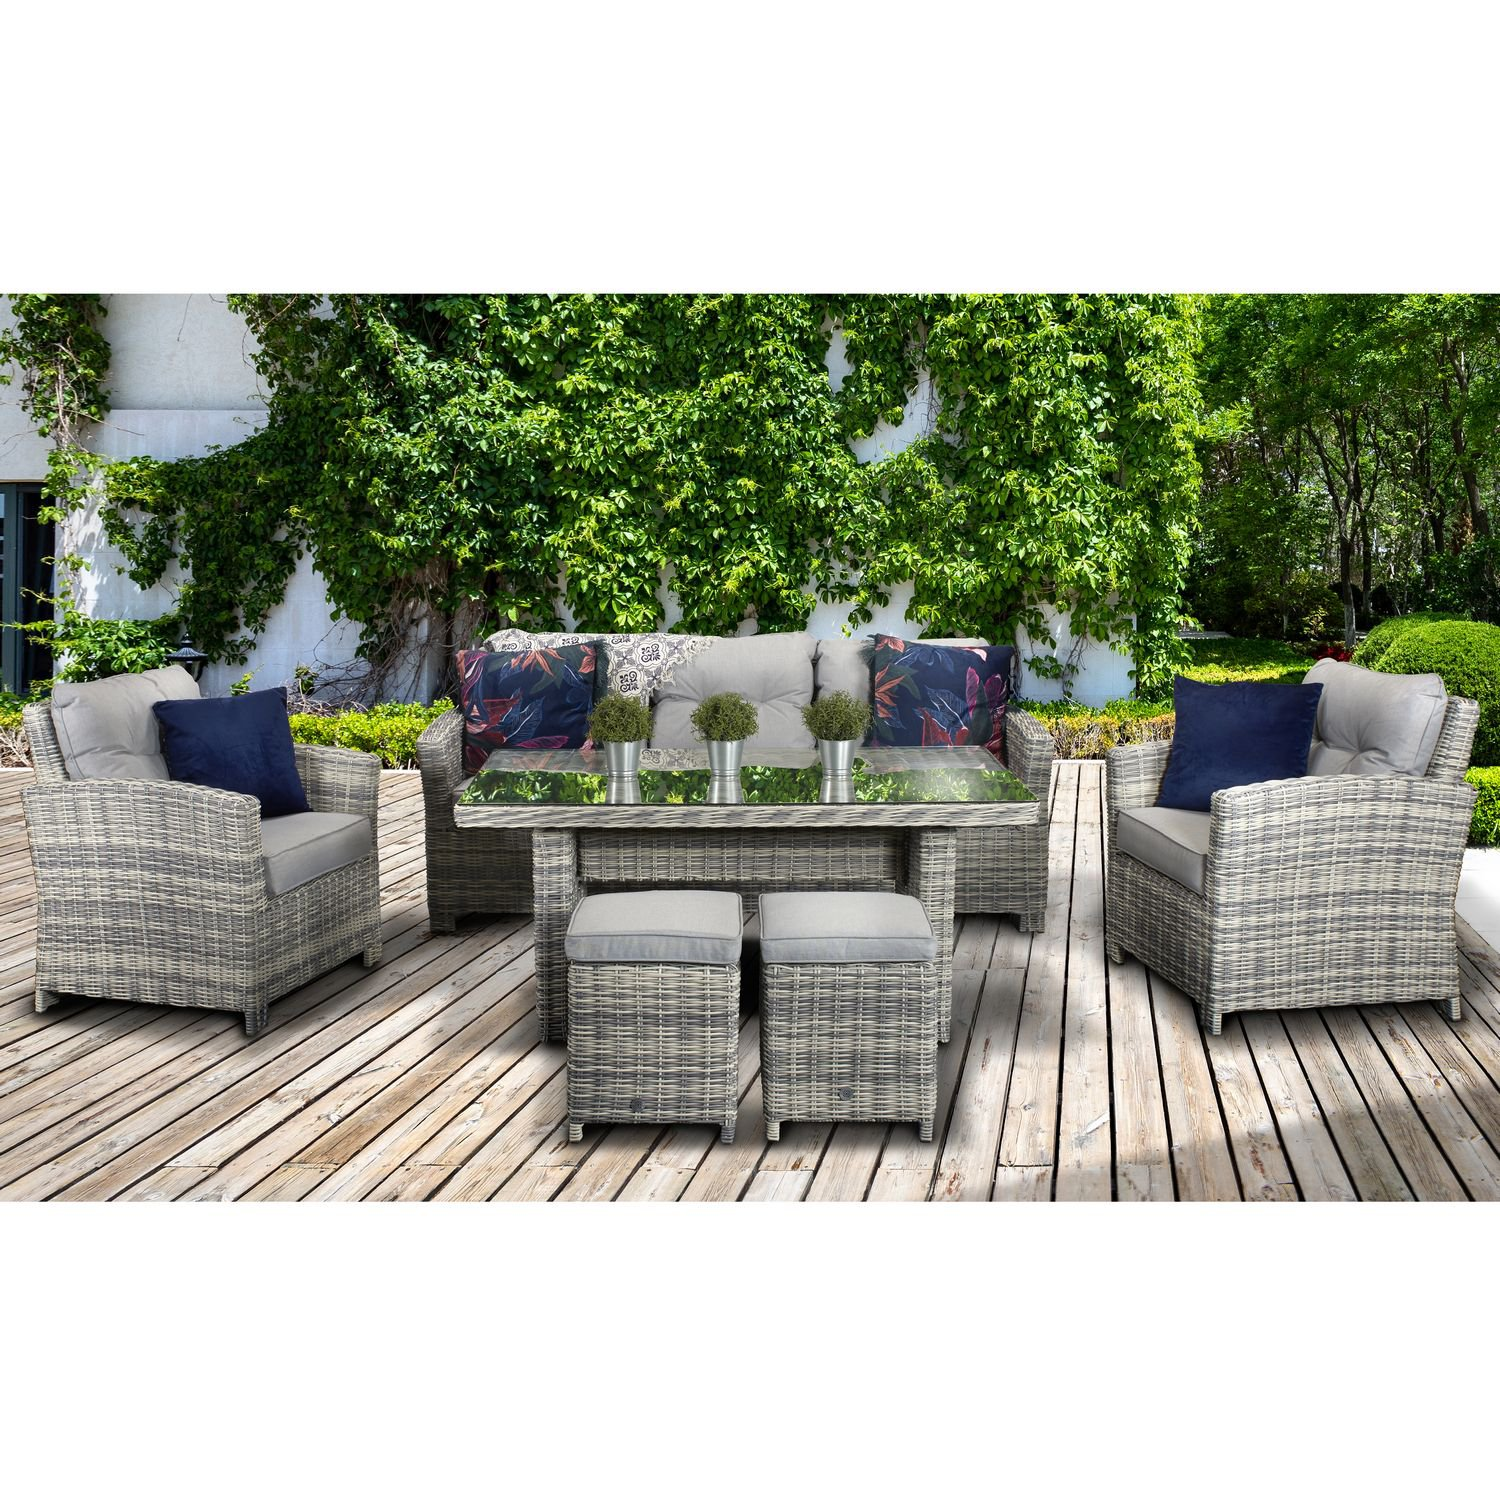 image-Signature Weave Garden Furniture Amy Creamy Grey 3 Seater Sofa Dining Set